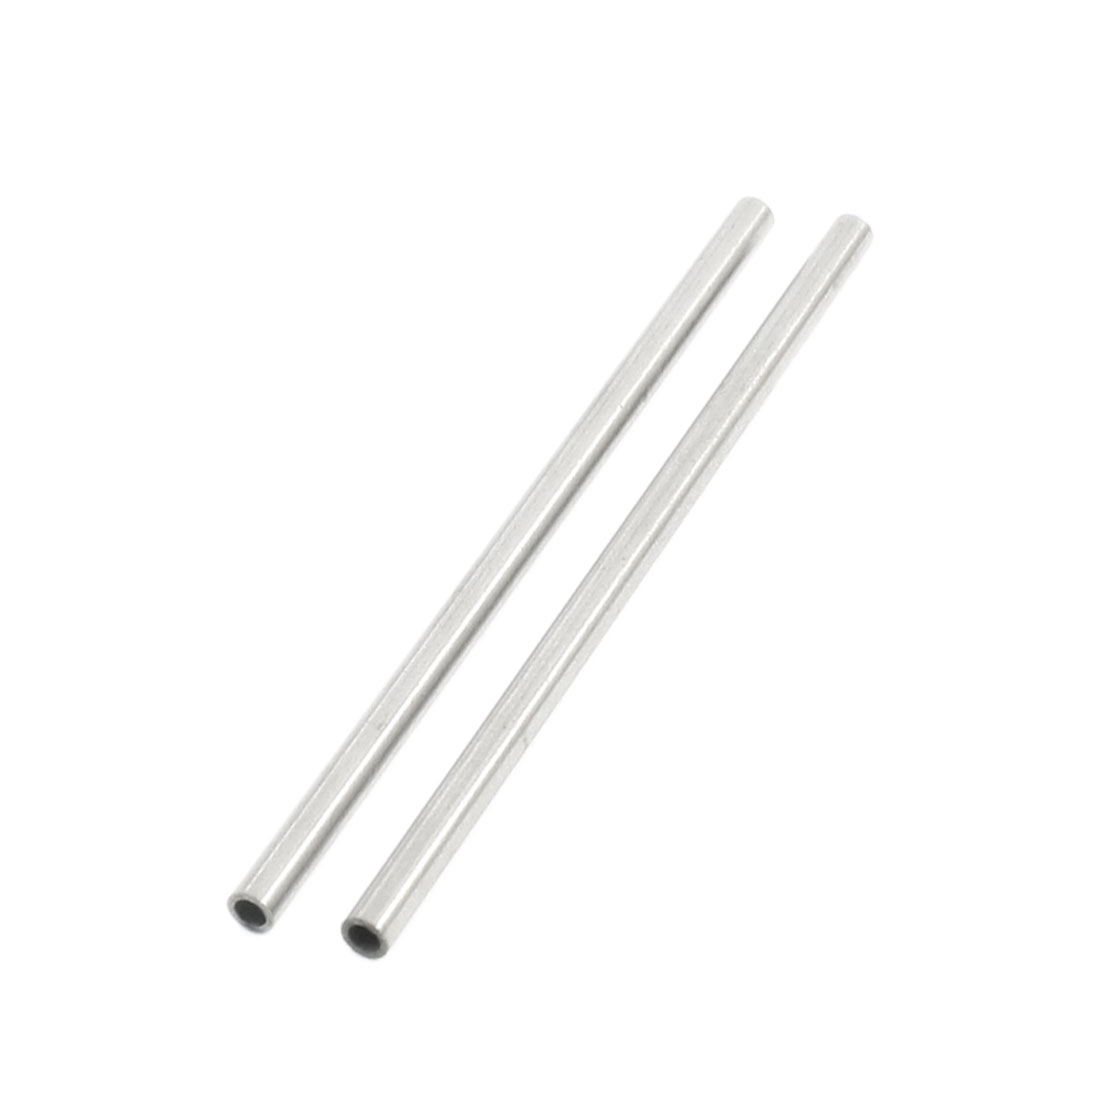 2 Pcs 70mm x 3mm x 2mm Stainless Steel Round Pipe Tube for DIY Car Helicopter Model Toy